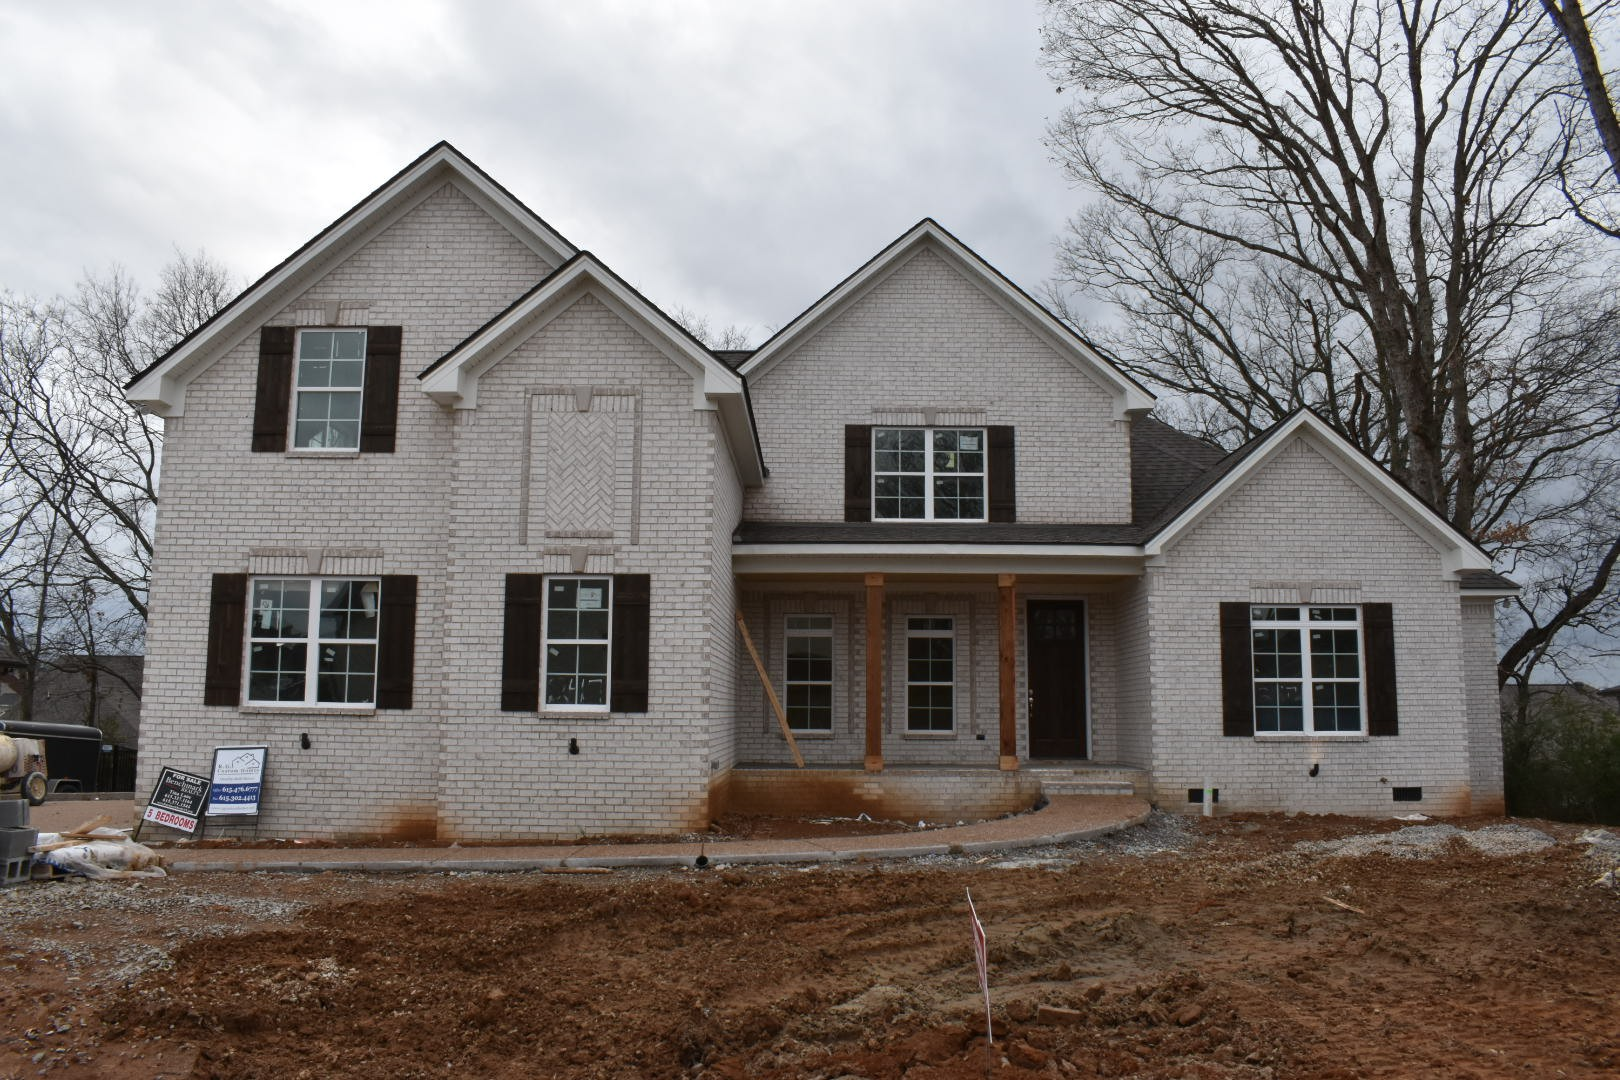 2961 Stewart Campbell Pt (247), Spring Hill, Tennessee